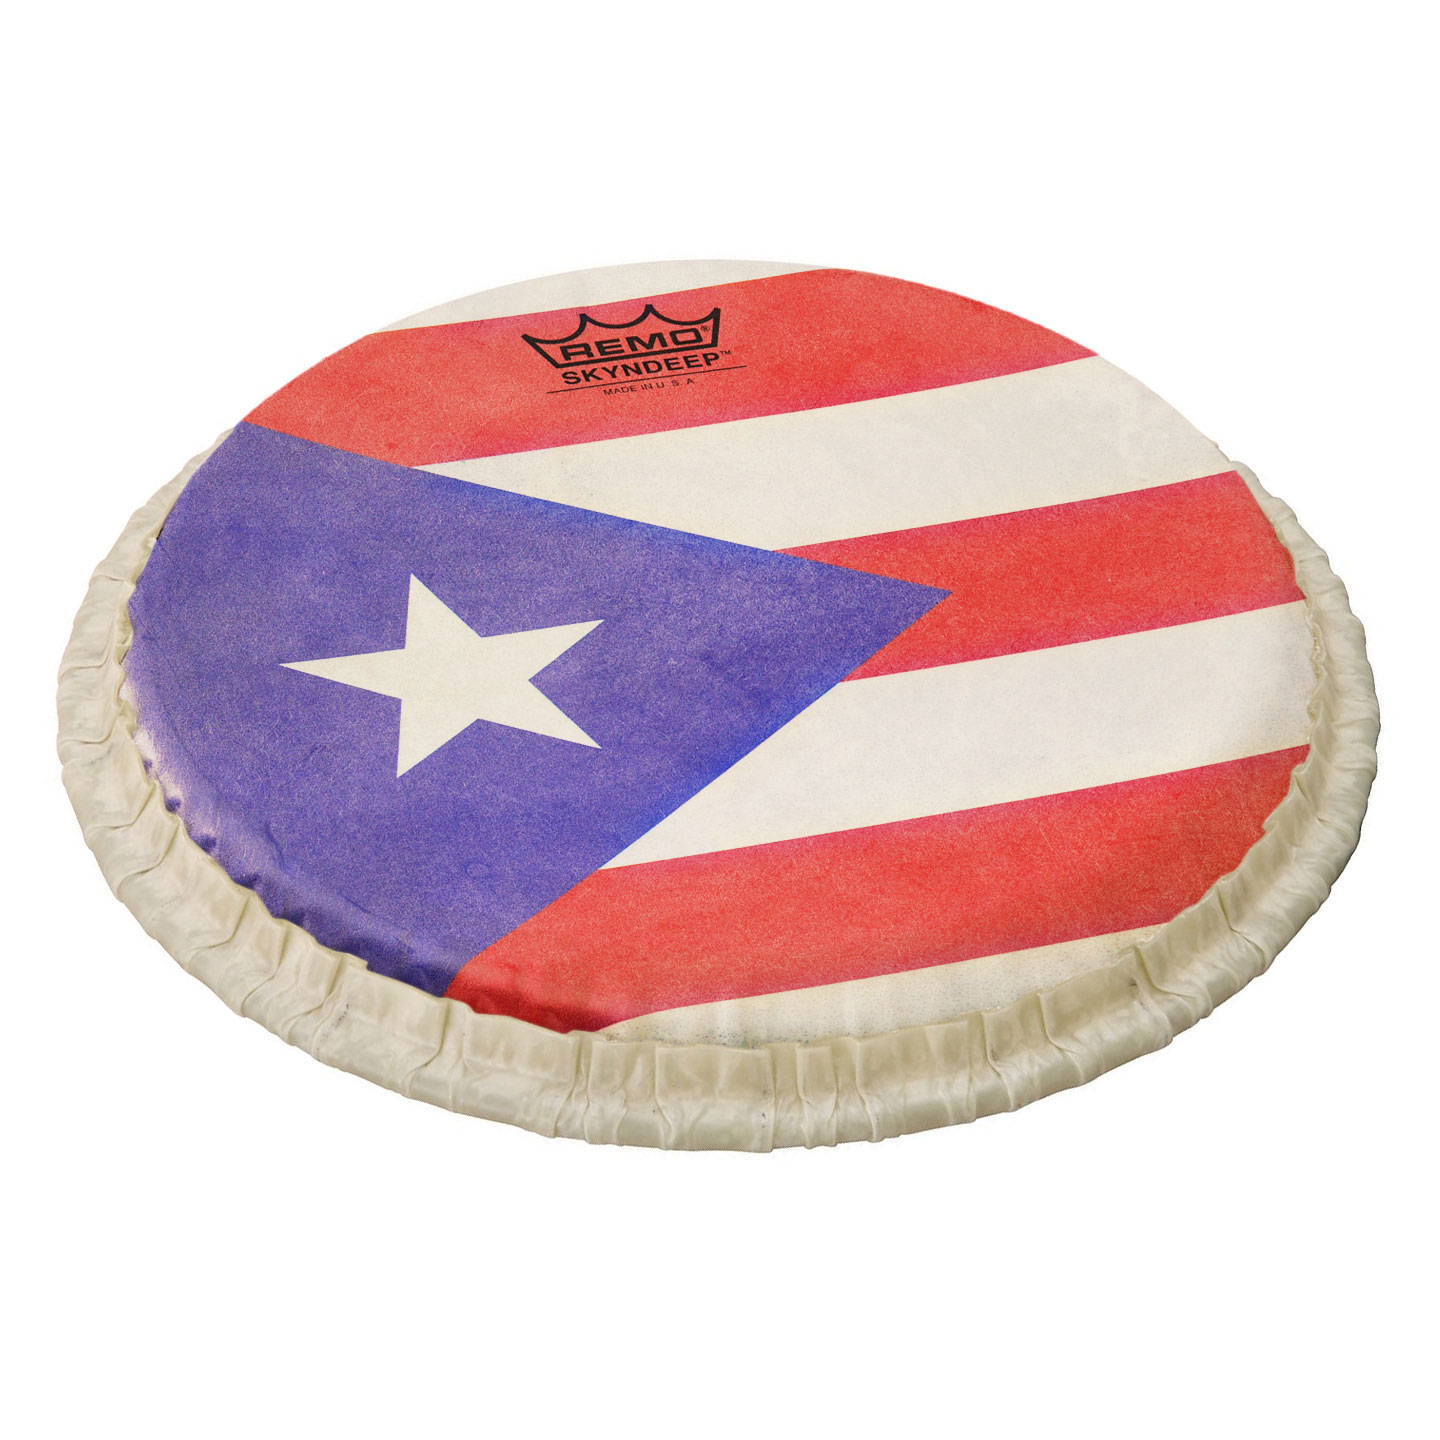 """Remo 8.5"""" R-Series Skyndeep Bongo Drum Head with Puerto Rican Flag Graphic"""